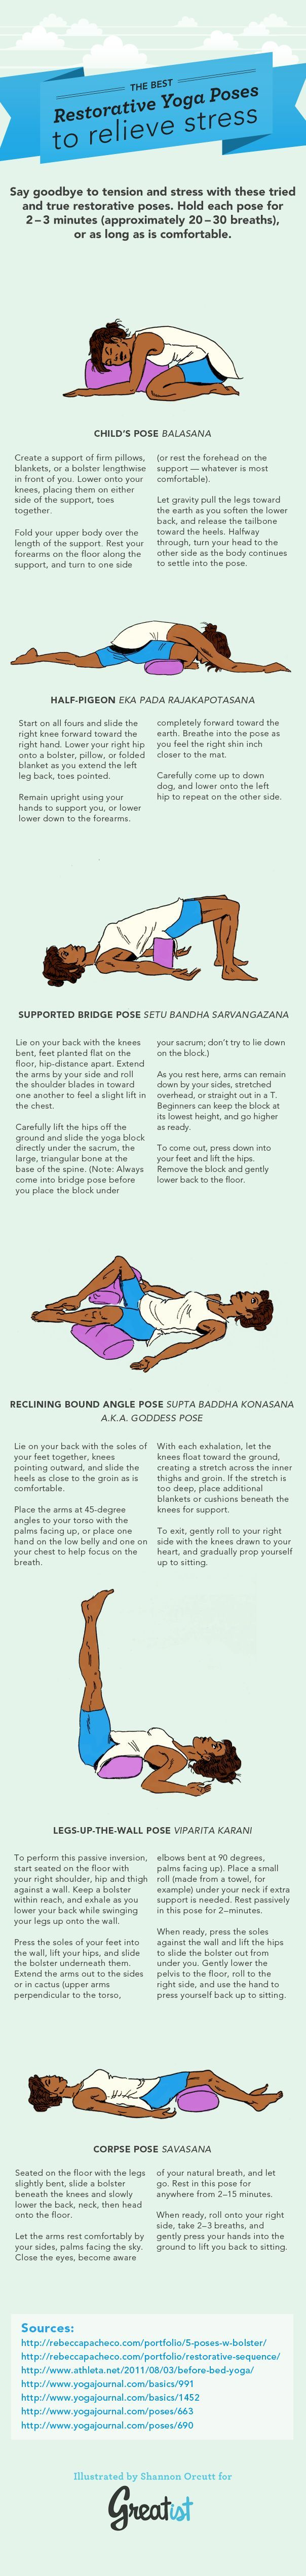 Infographic: The Best Restorative Yoga Poses to Relieve Stress